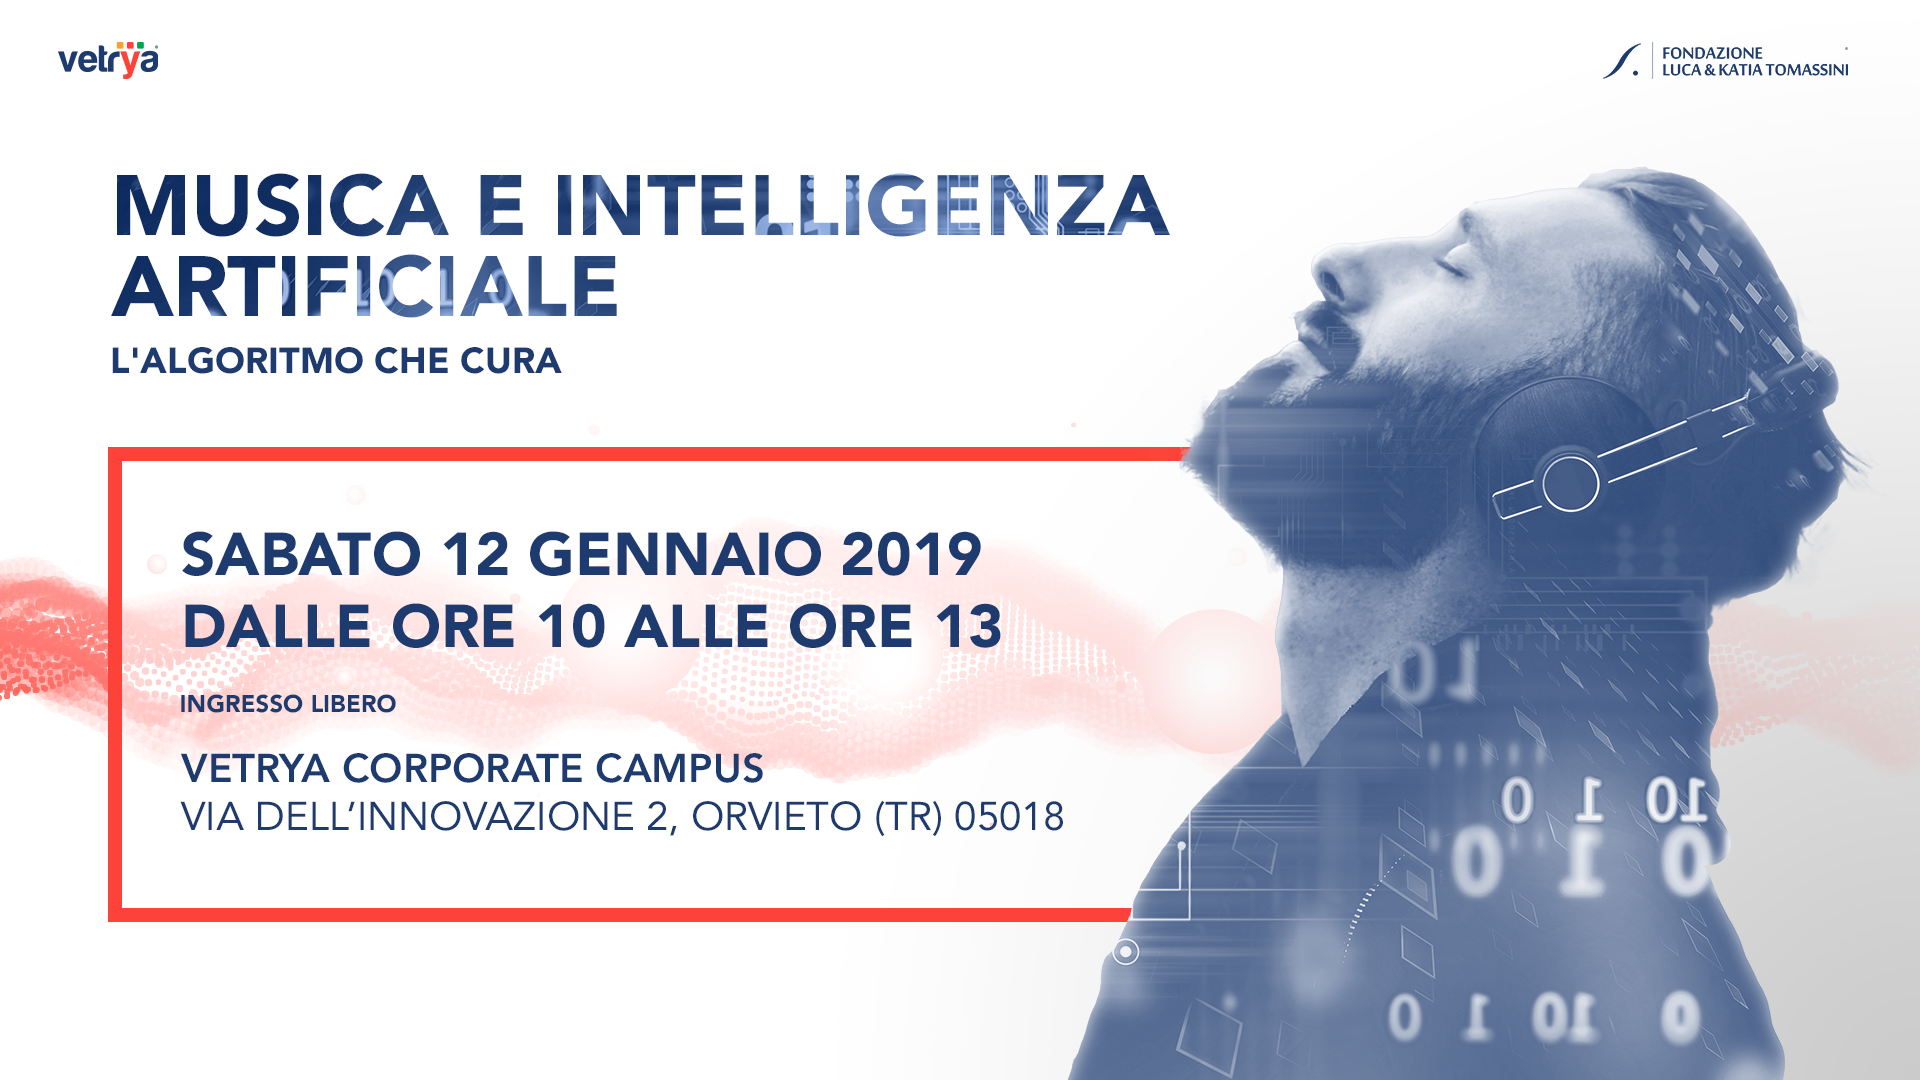 Musica e intelligenza artificiale 20190109